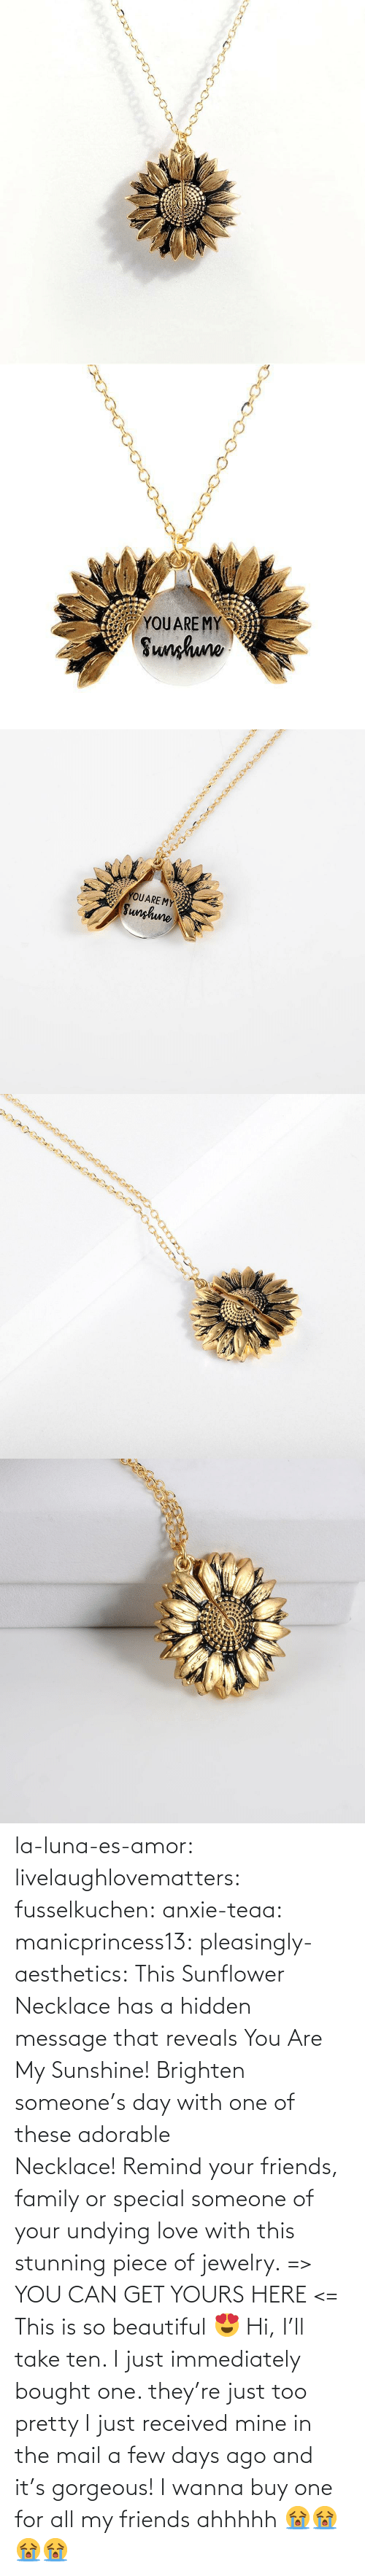 My Sunshine: YOUARE MY  Sunhuno   YOUARE MY  Sunghune la-luna-es-amor:  livelaughlovematters: fusselkuchen:  anxie-teaa:   manicprincess13:   pleasingly-aesthetics:  This Sunflower Necklace has a hidden message that reveals You Are My Sunshine! Brighten someone's day with one of these adorable Necklace!Remind your friends, family or special someone of your undying love with this stunning piece of jewelry. => YOU CAN GET YOURS HERE <=   This is so beautiful 😍    Hi, I'll take ten.    I just immediately bought one. they're just too pretty   I just received mine in the mail a few days ago and it's gorgeous!   I wanna buy one for all my friends ahhhhh 😭😭😭😭